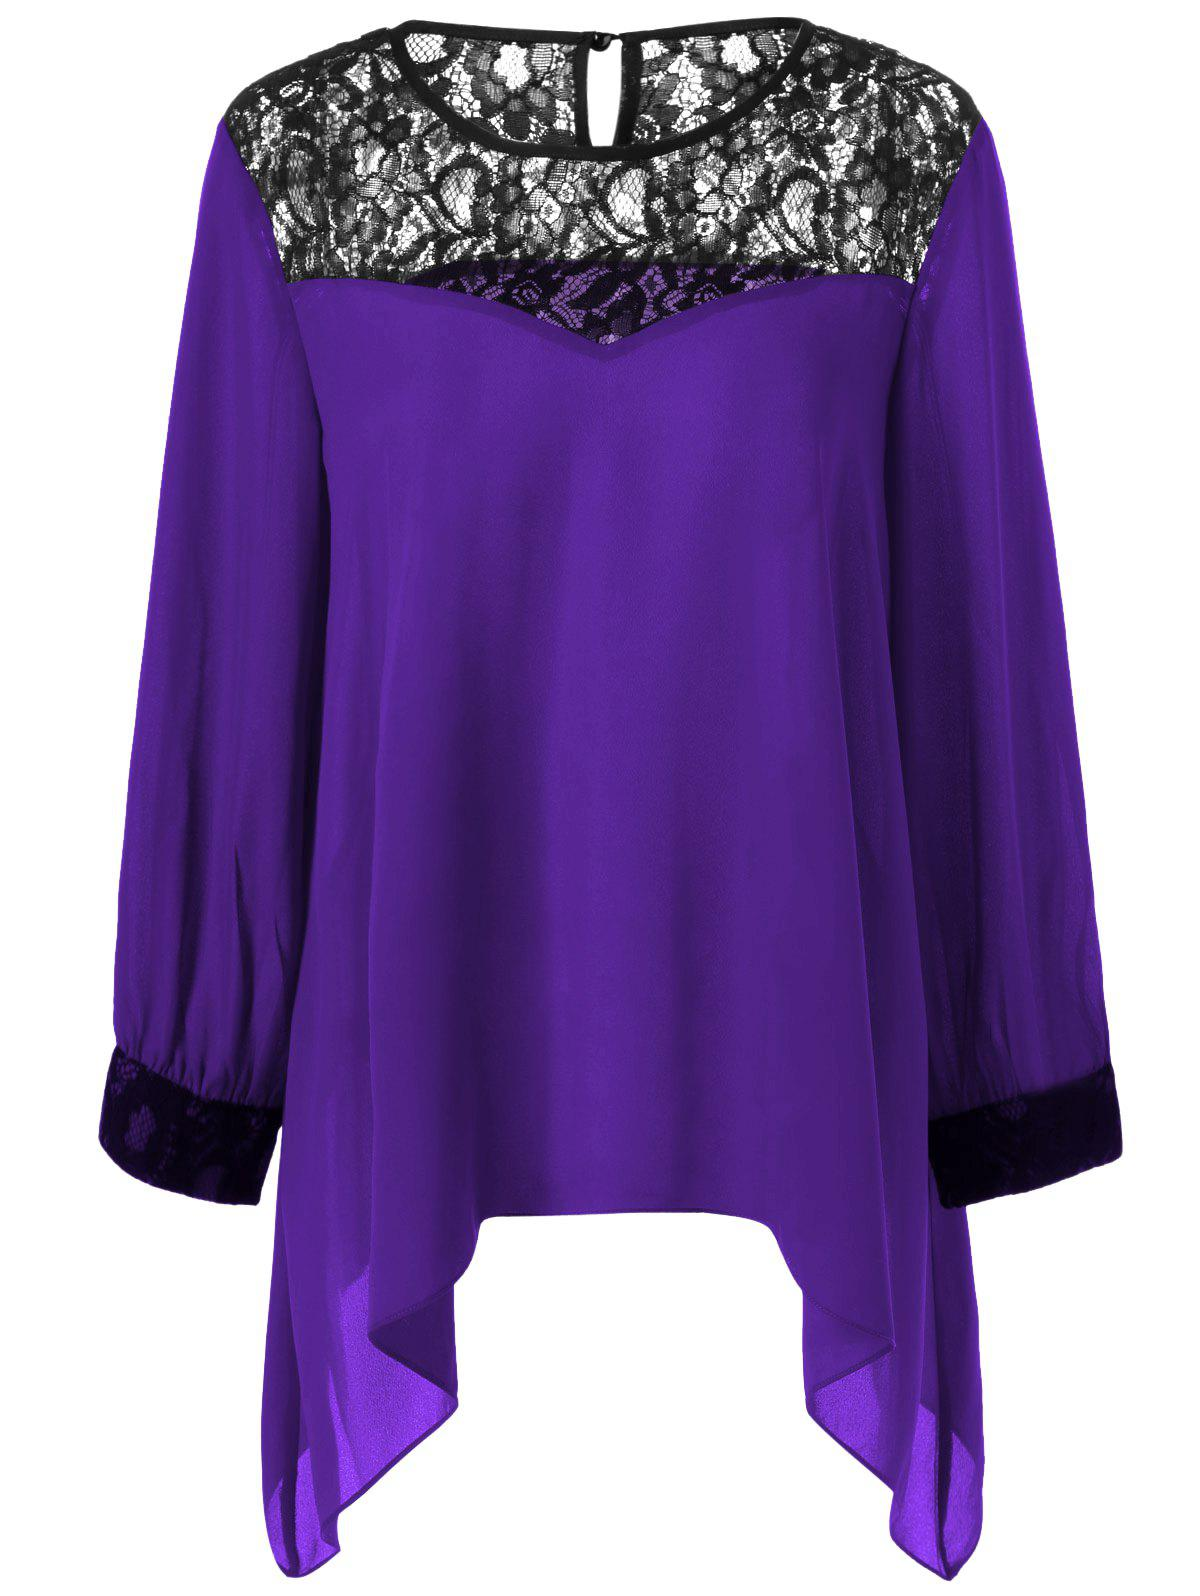 Plus Size Lace Splicing Asymmetrical BlouseWOMEN<br><br>Size: XL; Color: DEEP PURPLE; Material: Polyester; Shirt Length: Regular; Sleeve Length: Full; Collar: Scoop Neck; Style: Casual; Season: Spring,Summer; Pattern Type: Patchwork; Weight: 0.2130kg; Package Contents: 1 x Blouse;